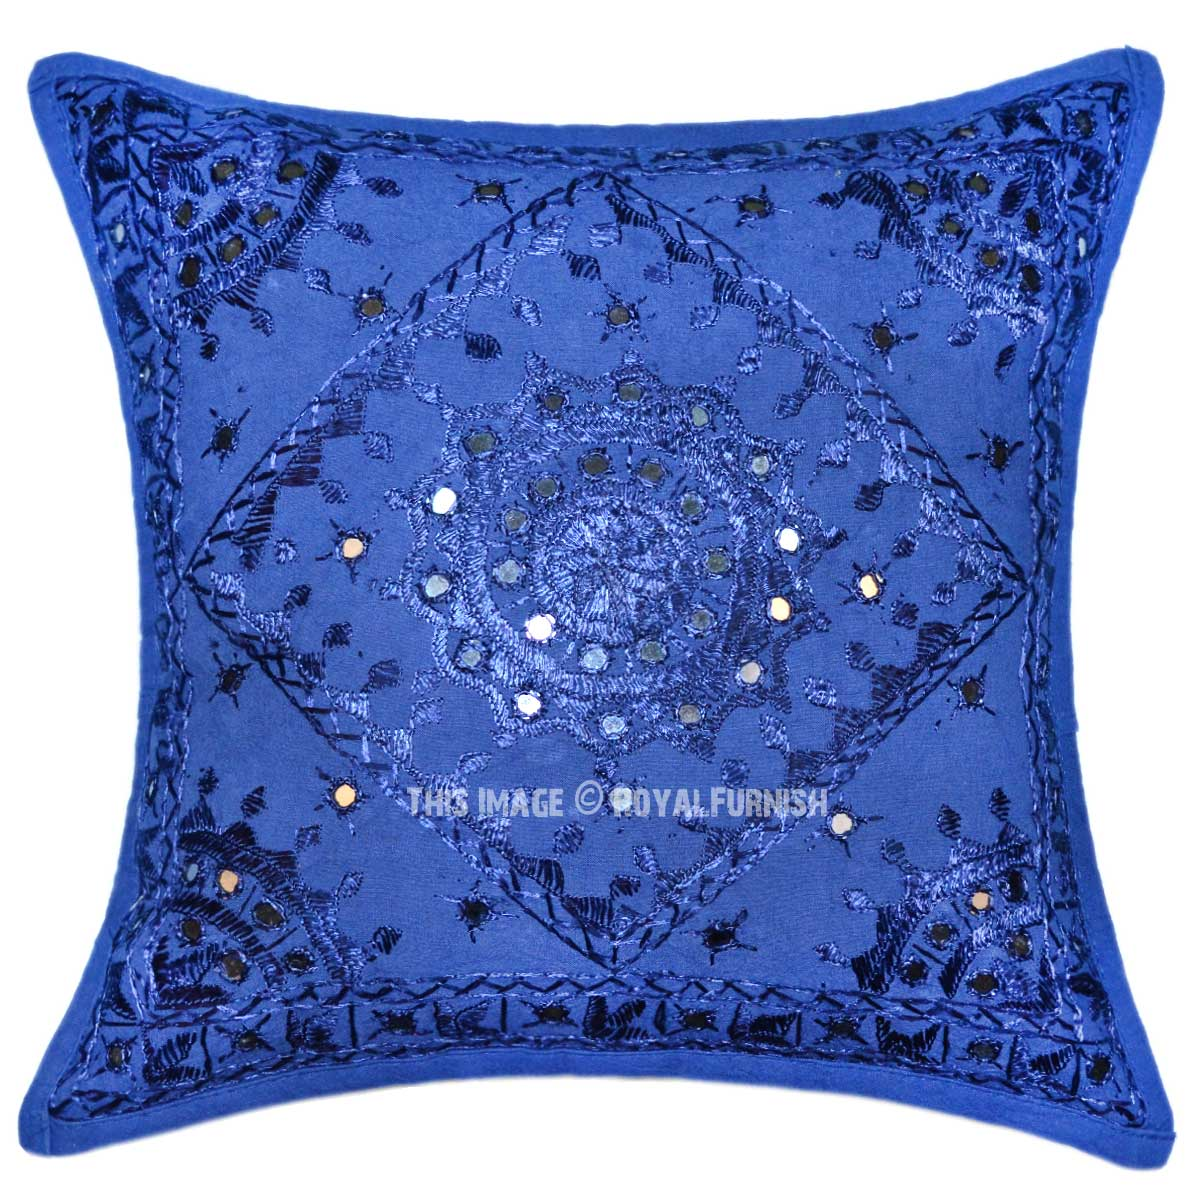 blue decorative pillows - 28 images - blue decorative mirrored unique handmade throw pillow ...